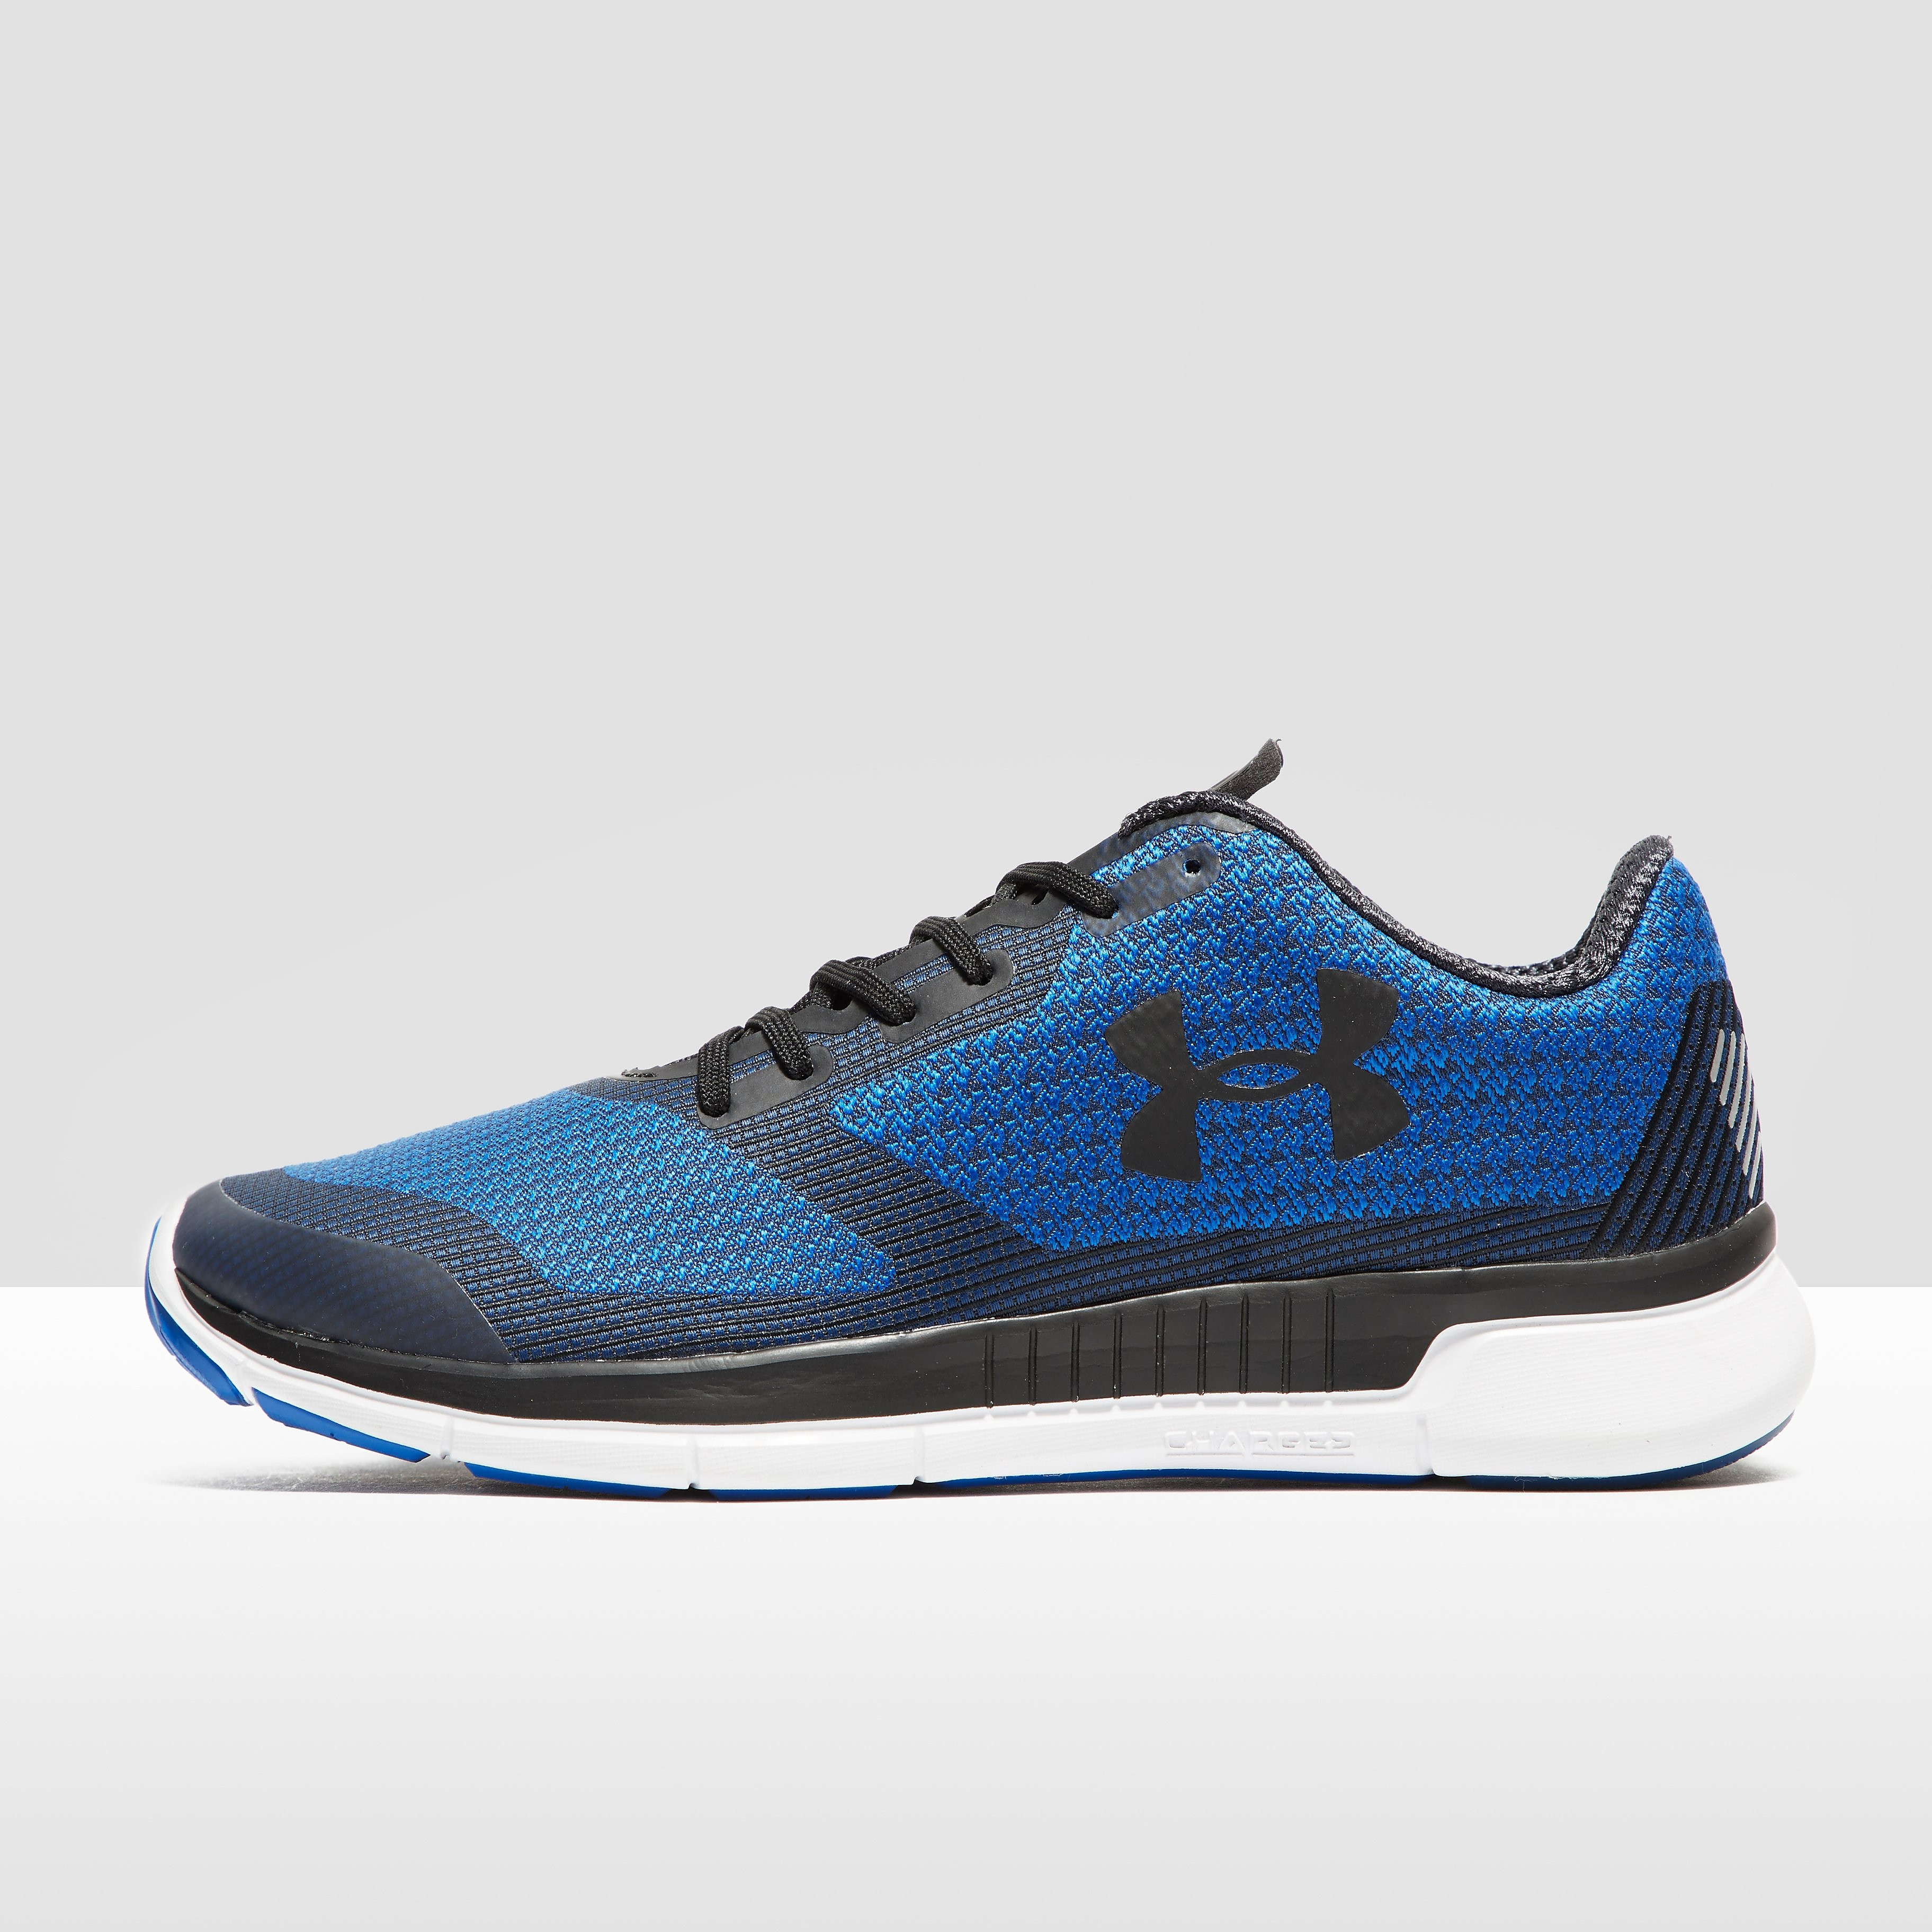 Under Armour Charged Lightening Men's Running Shoes